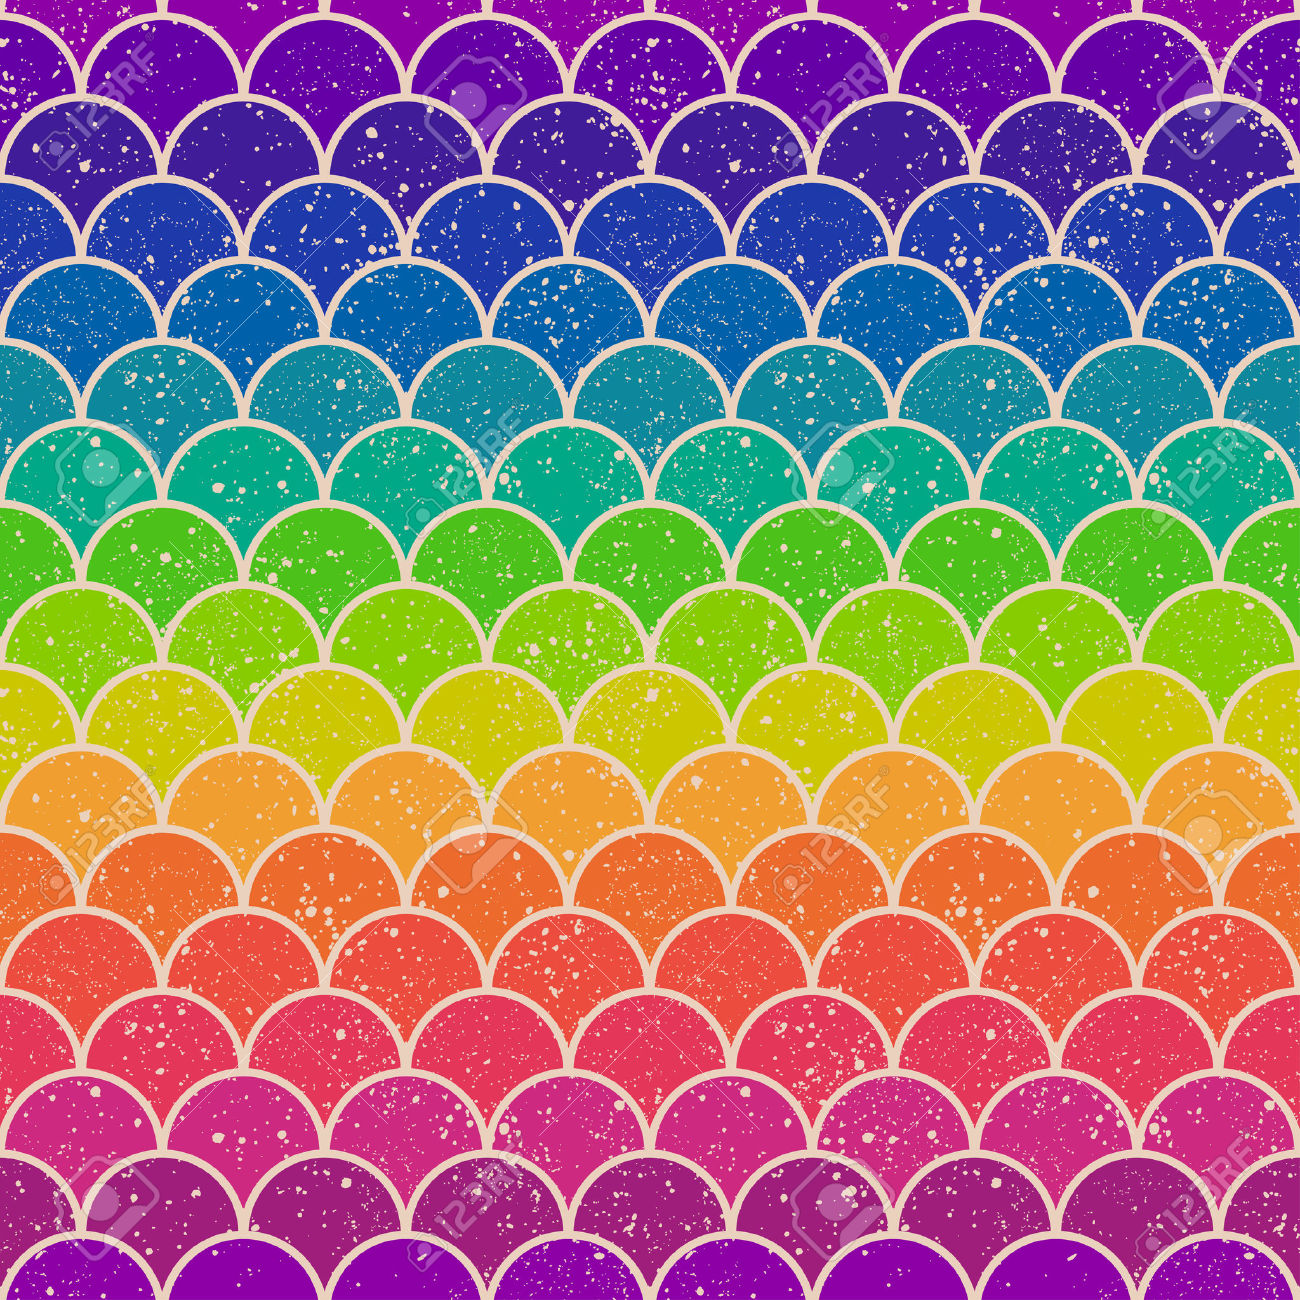 rainbow chevron background - photo #3